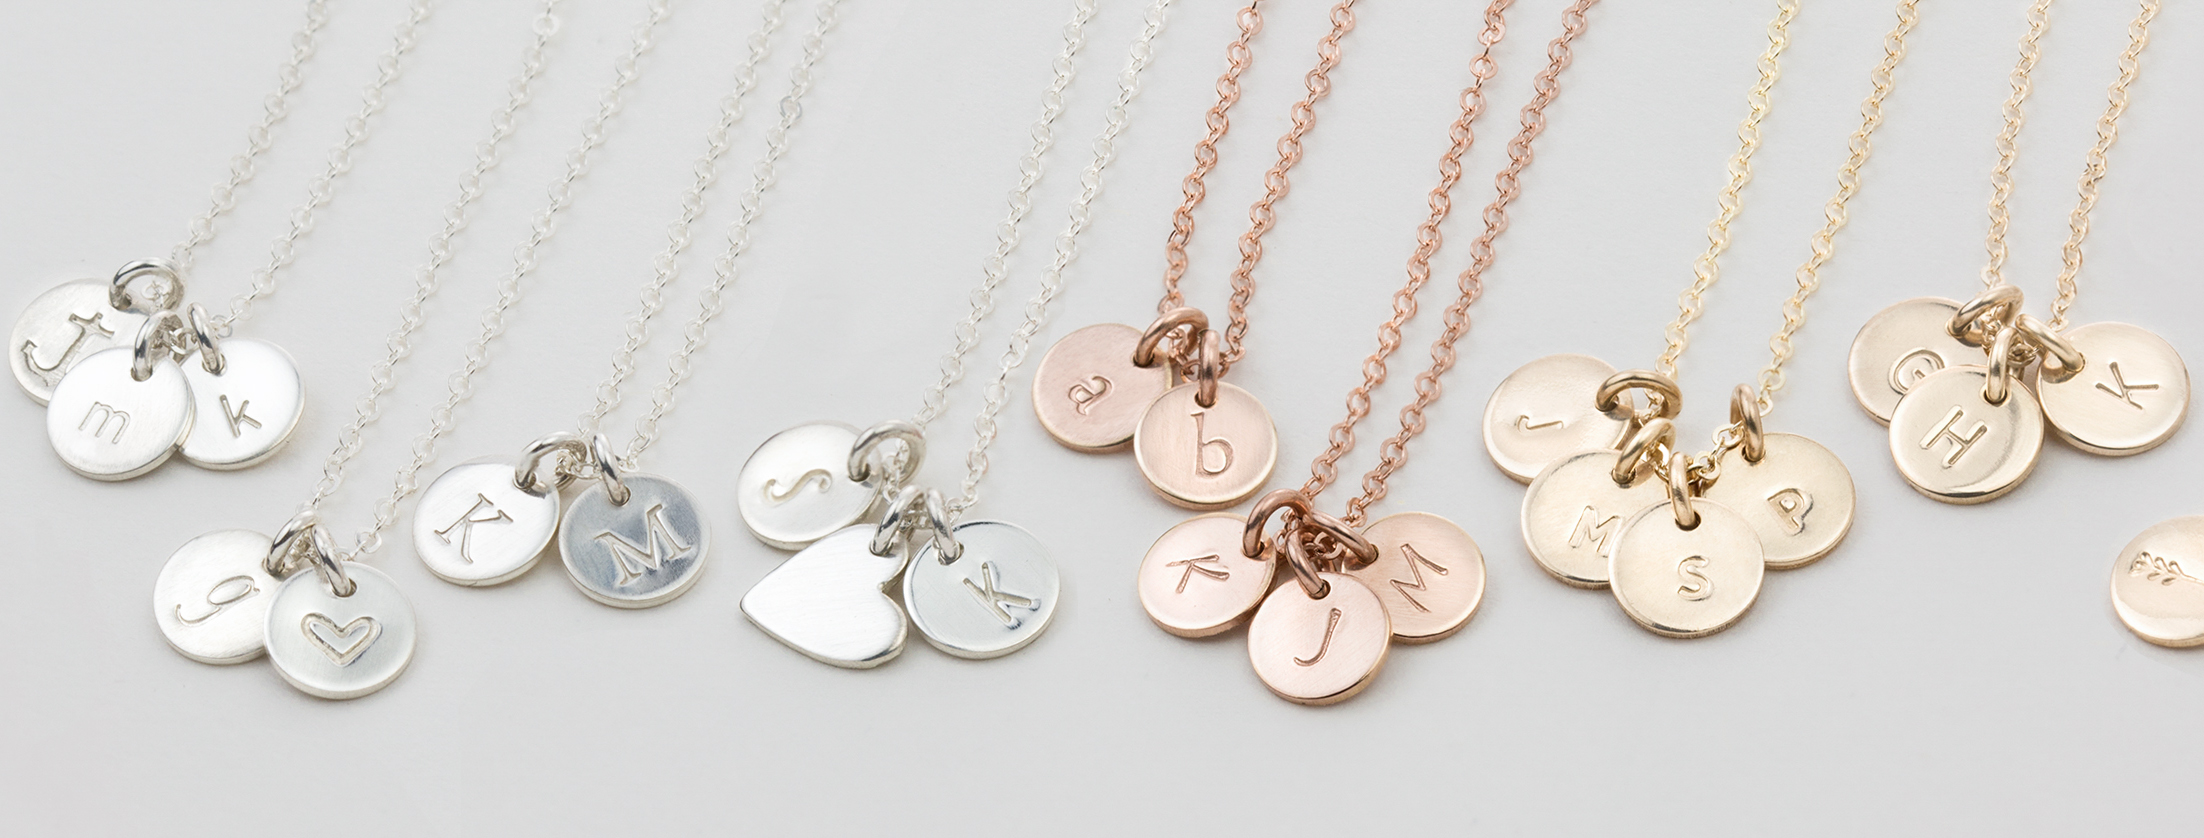 Tiny Disk Necklace